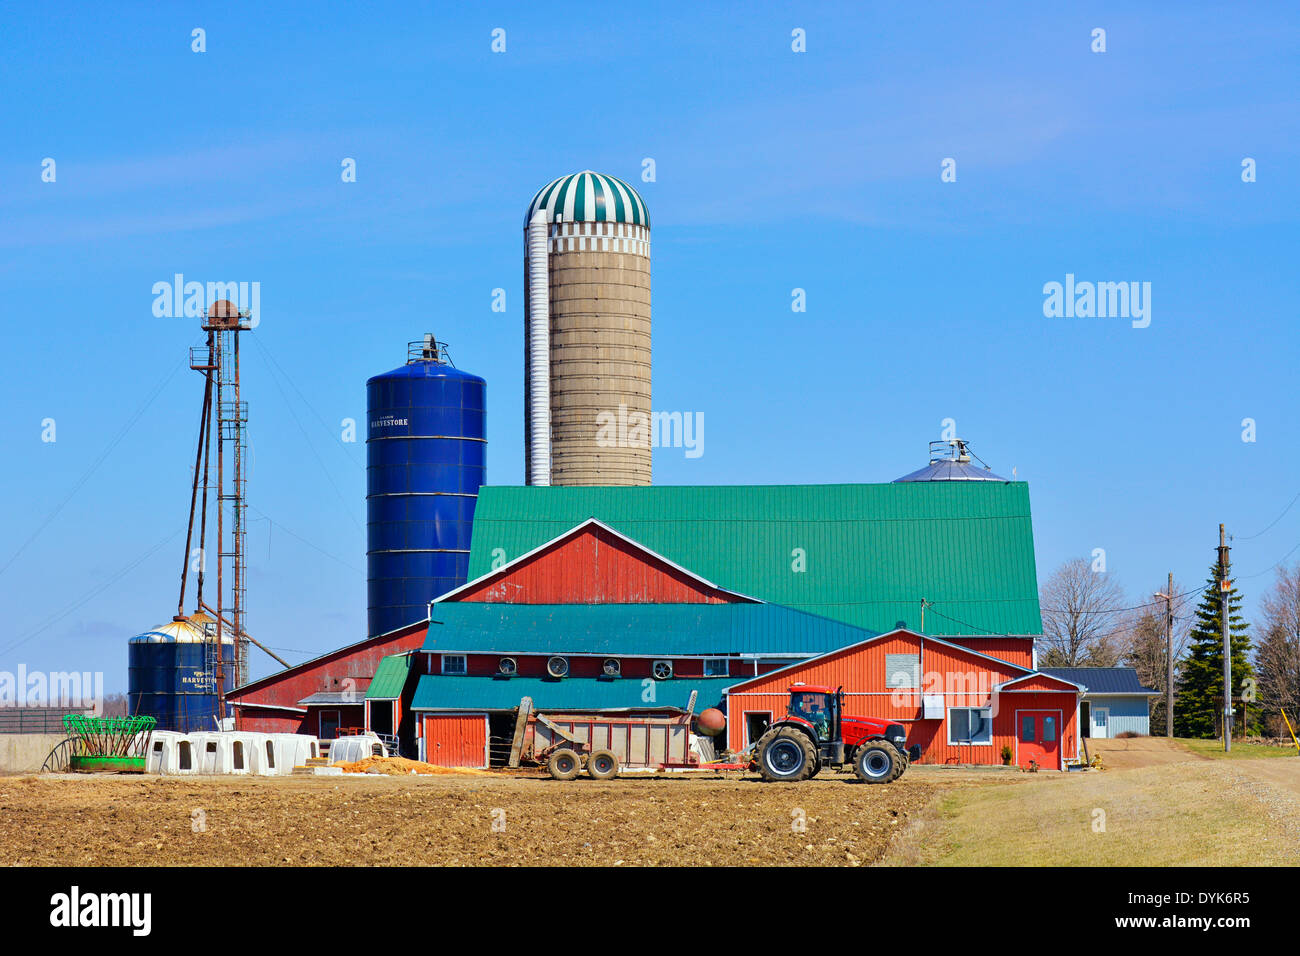 Ontario, Canada, Farm in Mennonite Country, St. Jacobs Village - Stock Image